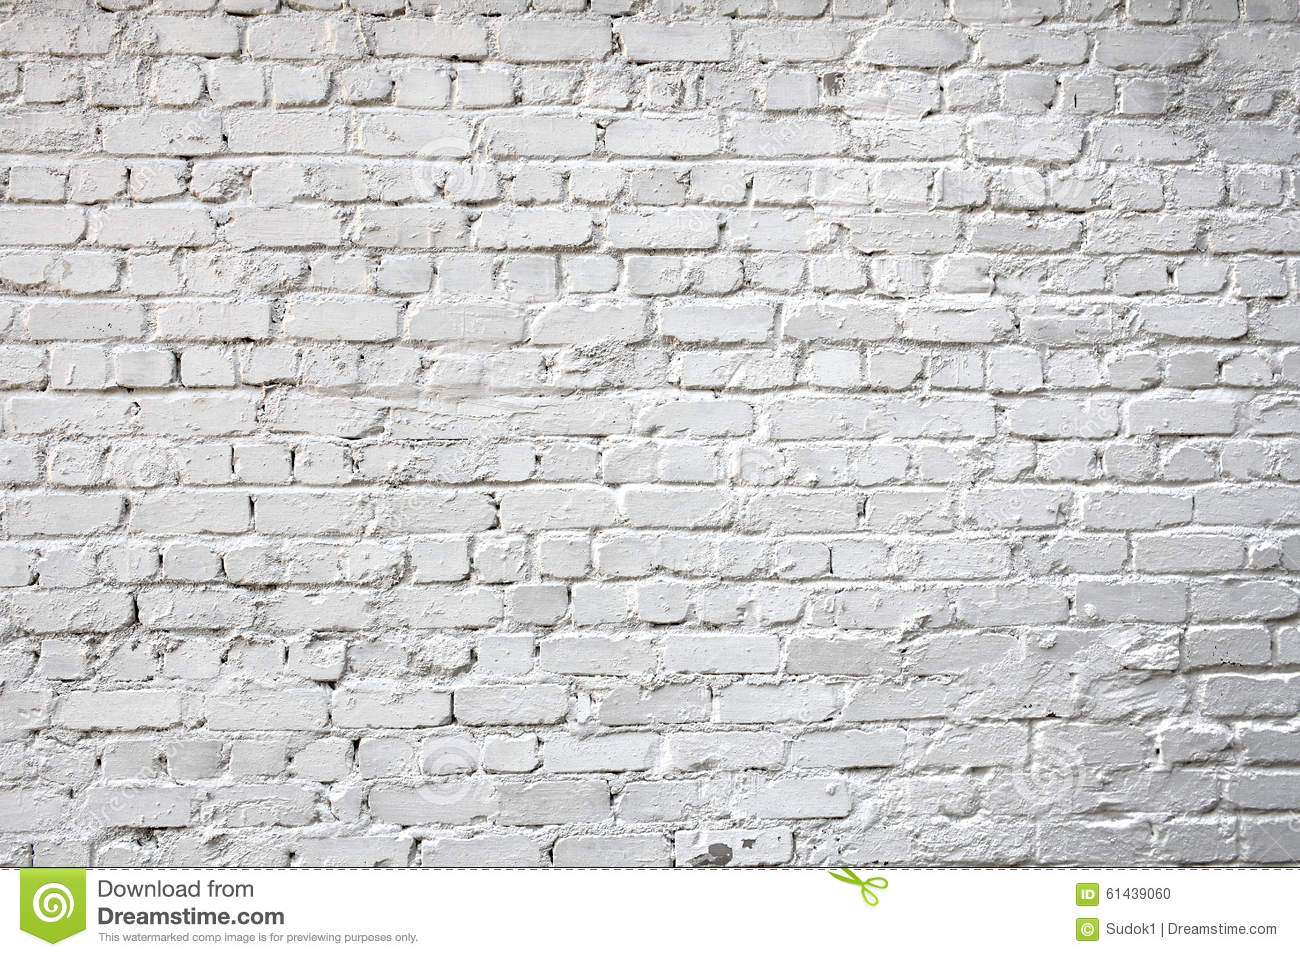 Whitewashed wall clipart #7